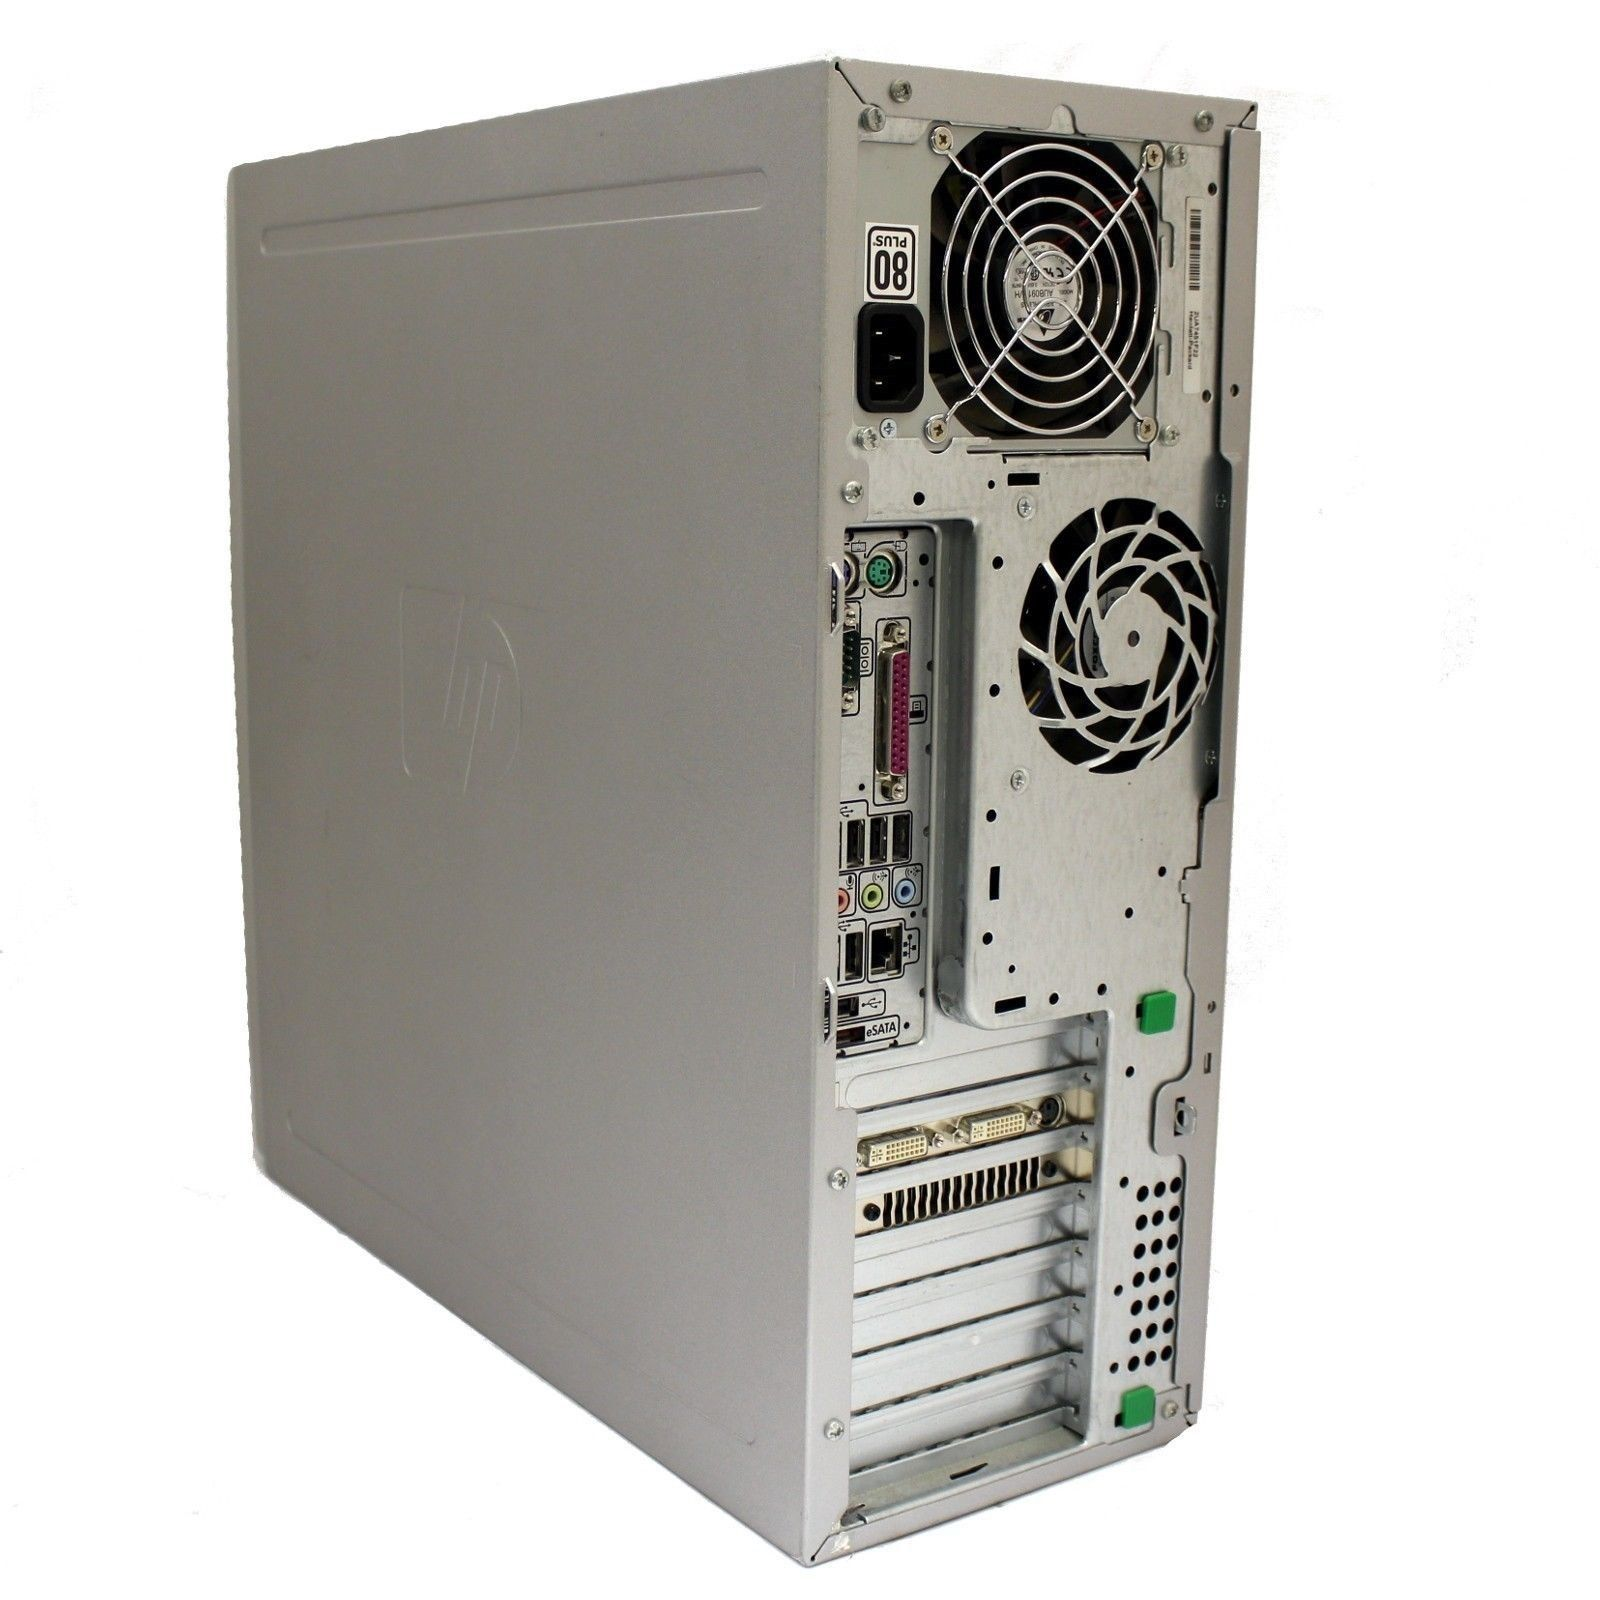 HP XW4600 Workstation Tower PC Core 2 Duo 2.33GHz 4GB RAM ...